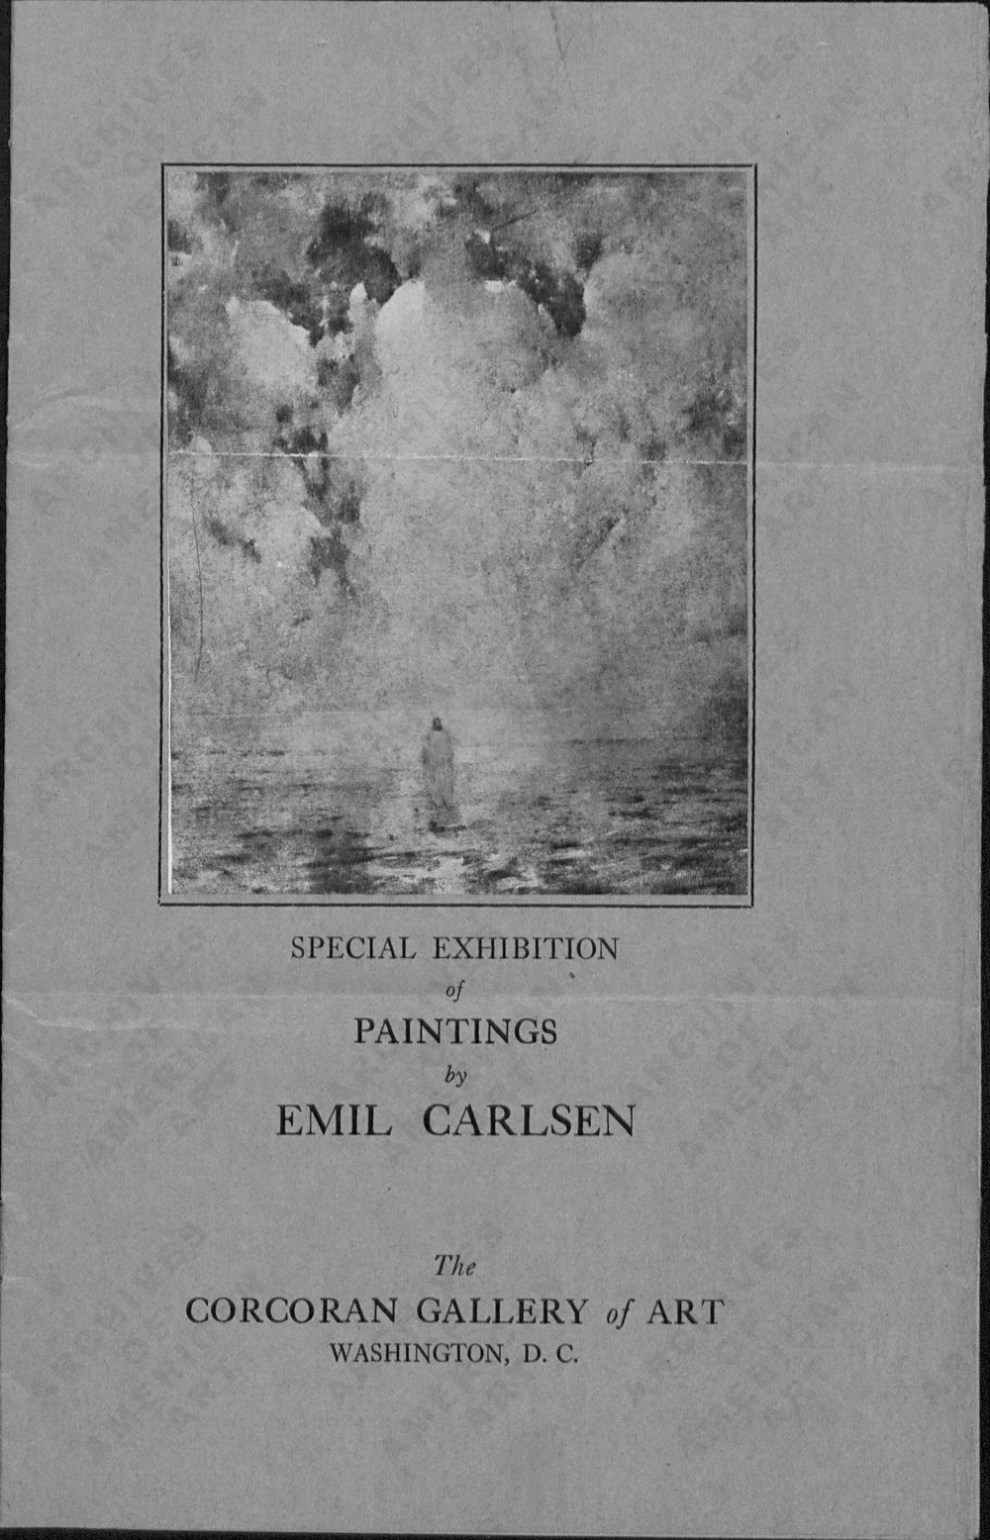 """Emil Carlsen and Carnegie Institute Correspondence"" provided by the American Art Archives, Series 3: Exhibitions, 1901-1940, Box 188, folder 1."